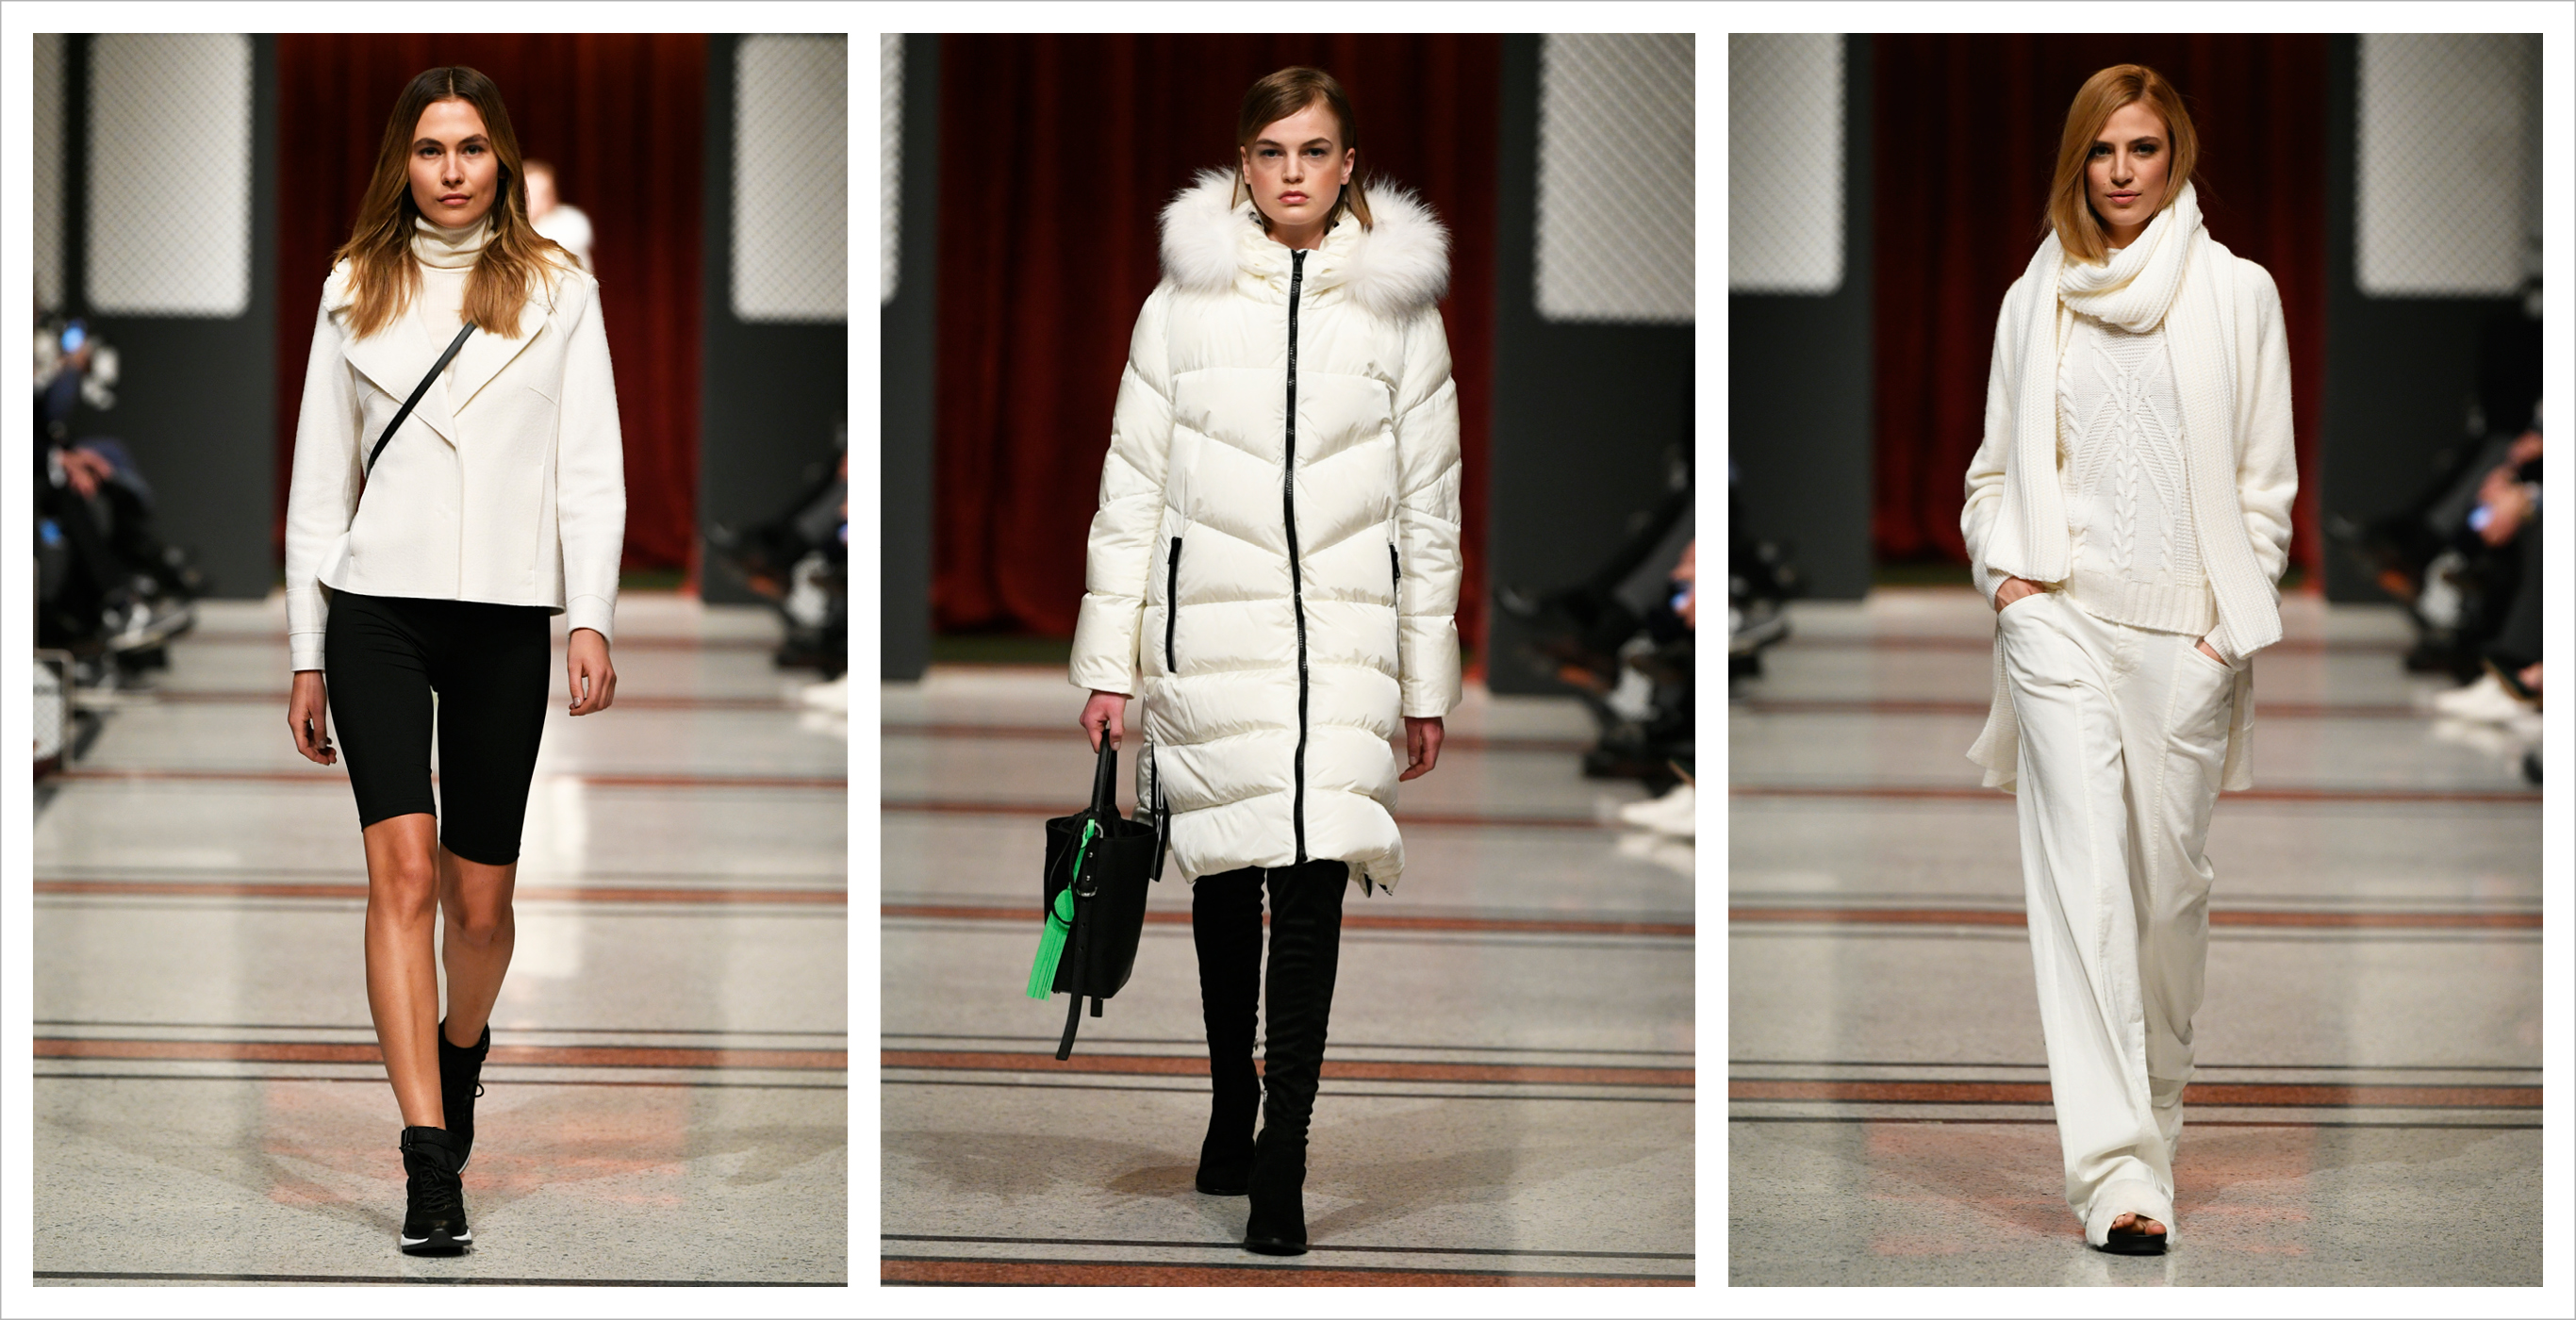 FWBFW19_Slider_Cat_Walk_11